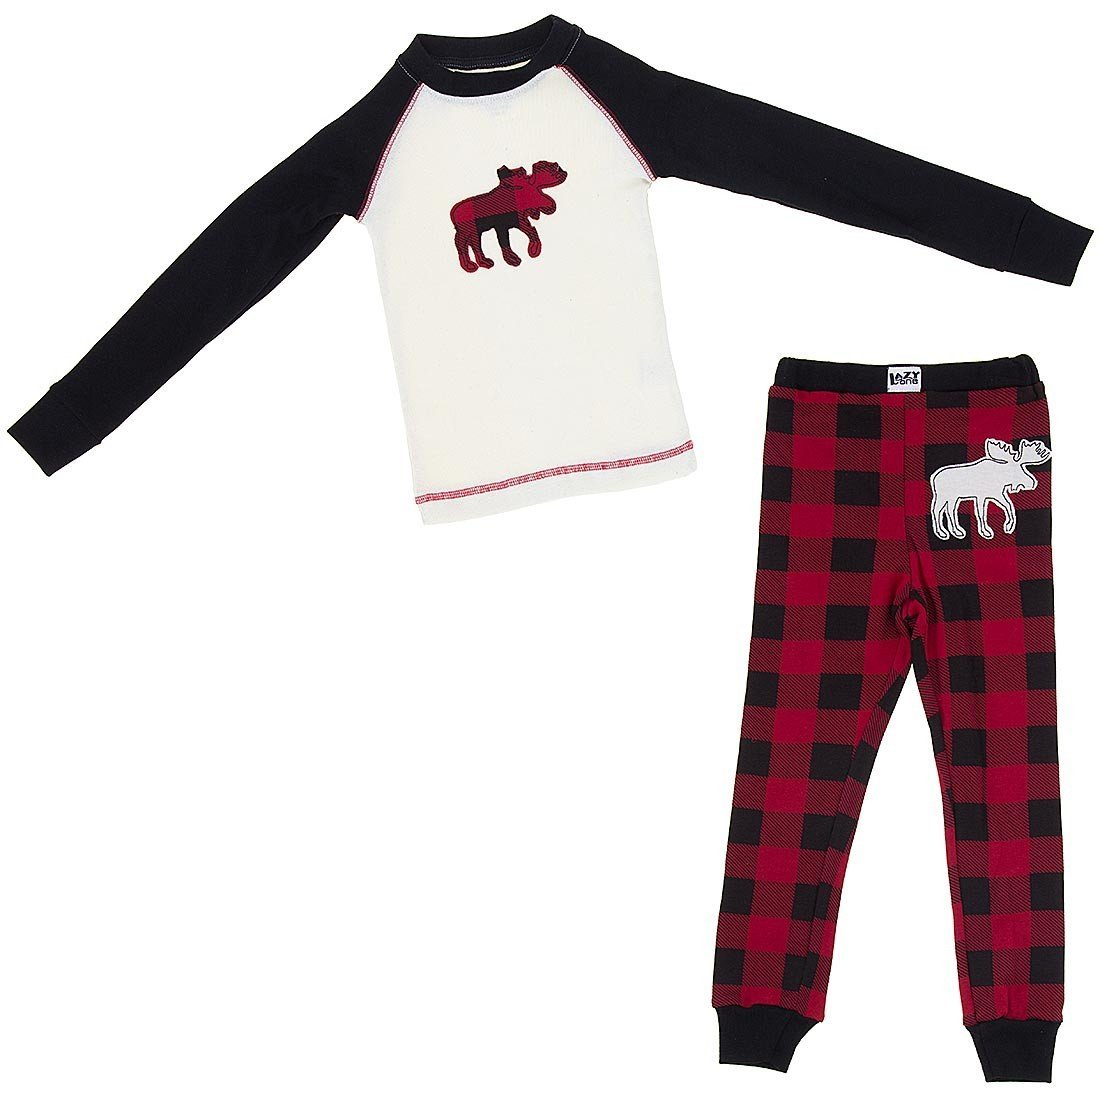 Lazy One Plaid Moose Cotton Pajamas for Little Boys' KID1404T